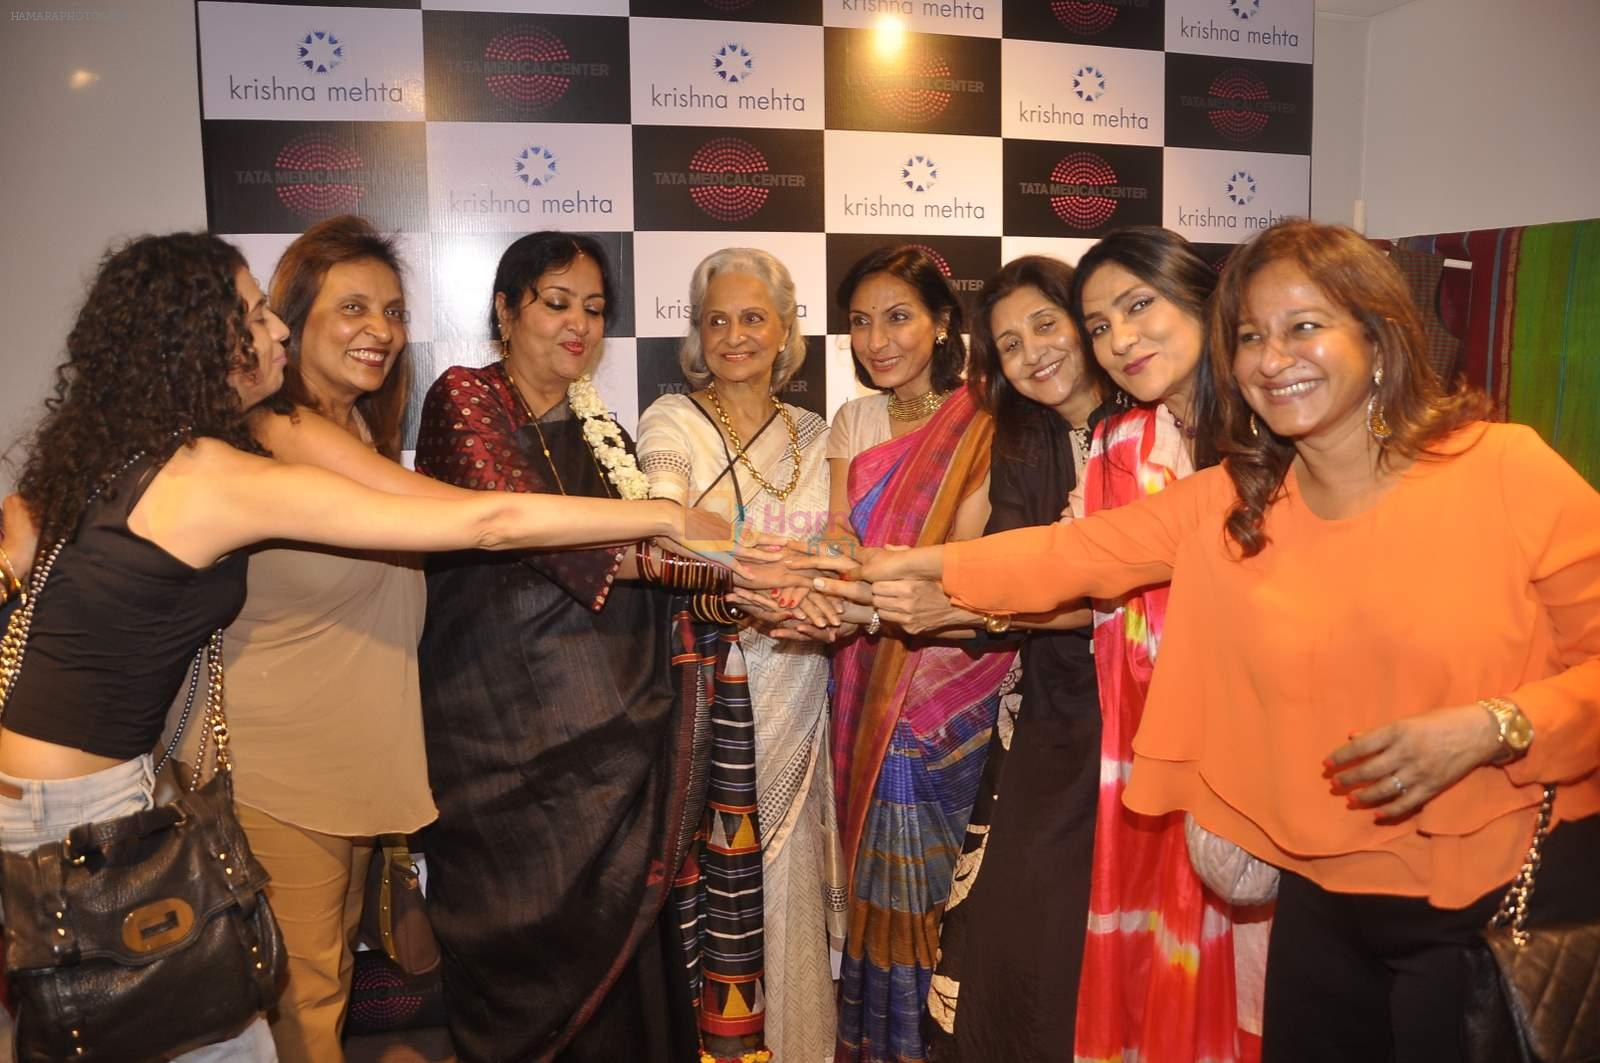 Waheeda Rehman at Krishna Mehta's store in association with Tata Medical Center in Chowpatty on 10th July 2015